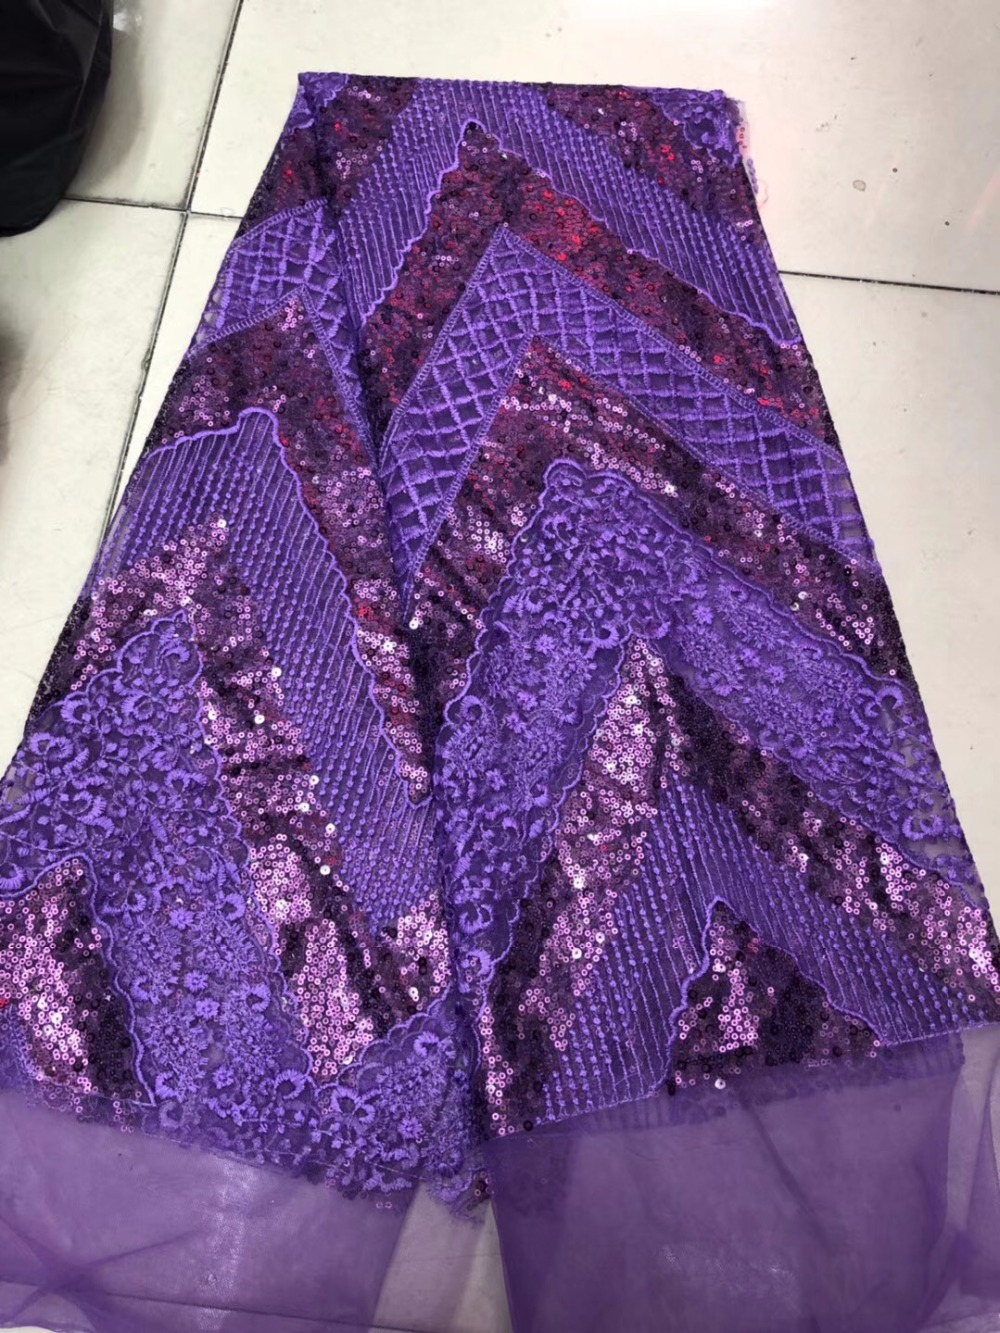 African Sequin Lace Fabric Embroidered Lace Trim The Fabric On The Dresses Nigerian Lace Fabrics 2018 Hot SaleAfrican Sequin Lace Fabric Embroidered Lace Trim The Fabric On The Dresses Nigerian Lace Fabrics 2018 Hot Sale